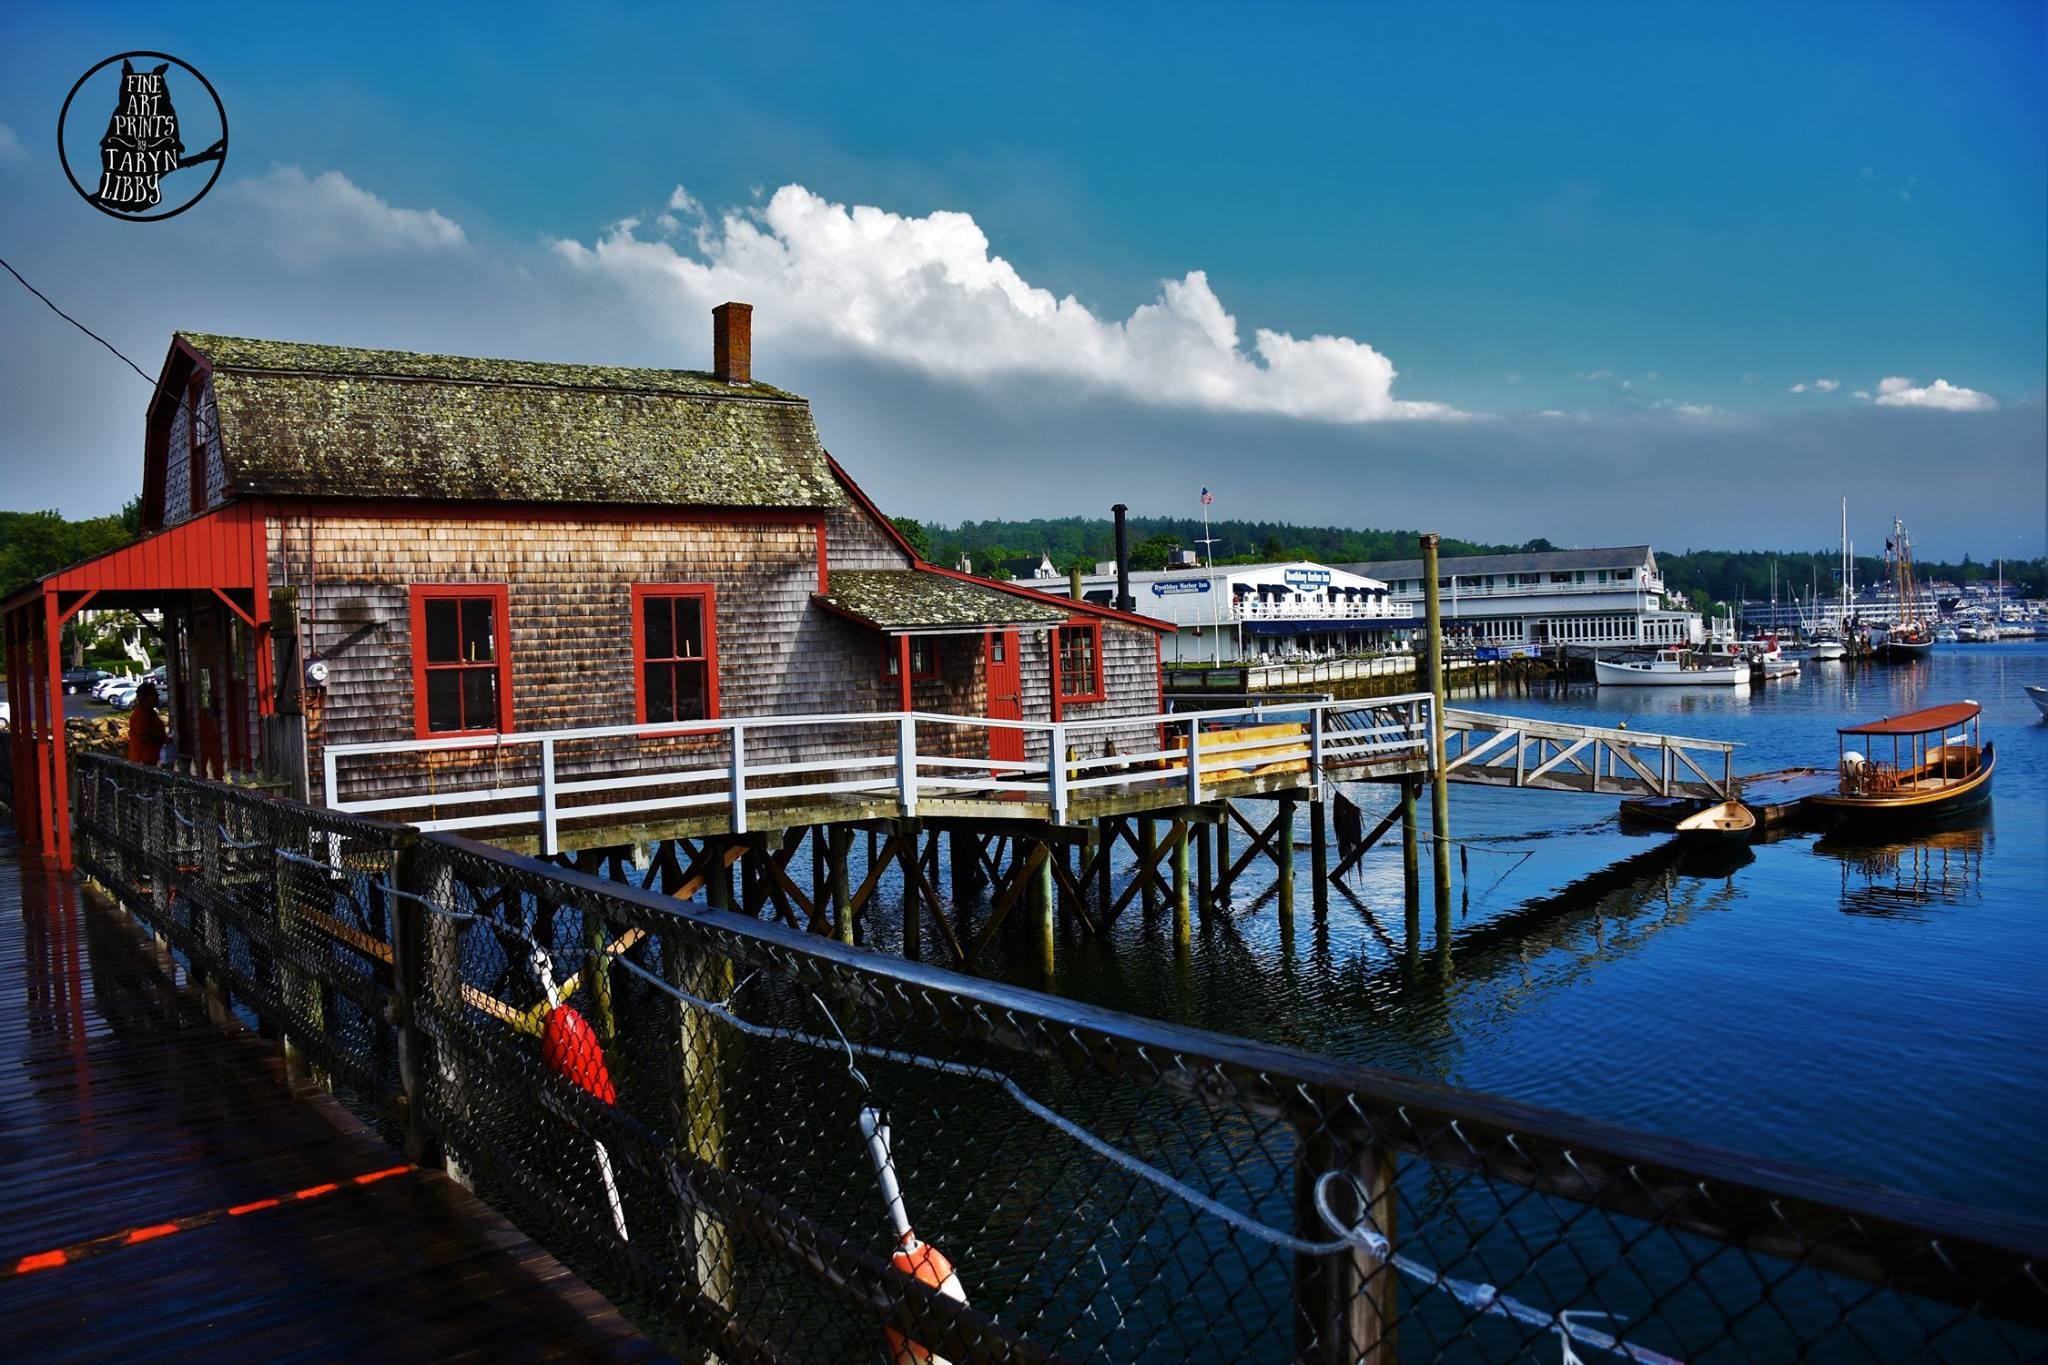 west boothbay harbor muslim single women Working to end domestic violence, dating violence and stalking toll free 24-hour hotline: 1-800-522-3304 wiscasset office hours: thursday and friday, noon to 4 pm and by appointment.